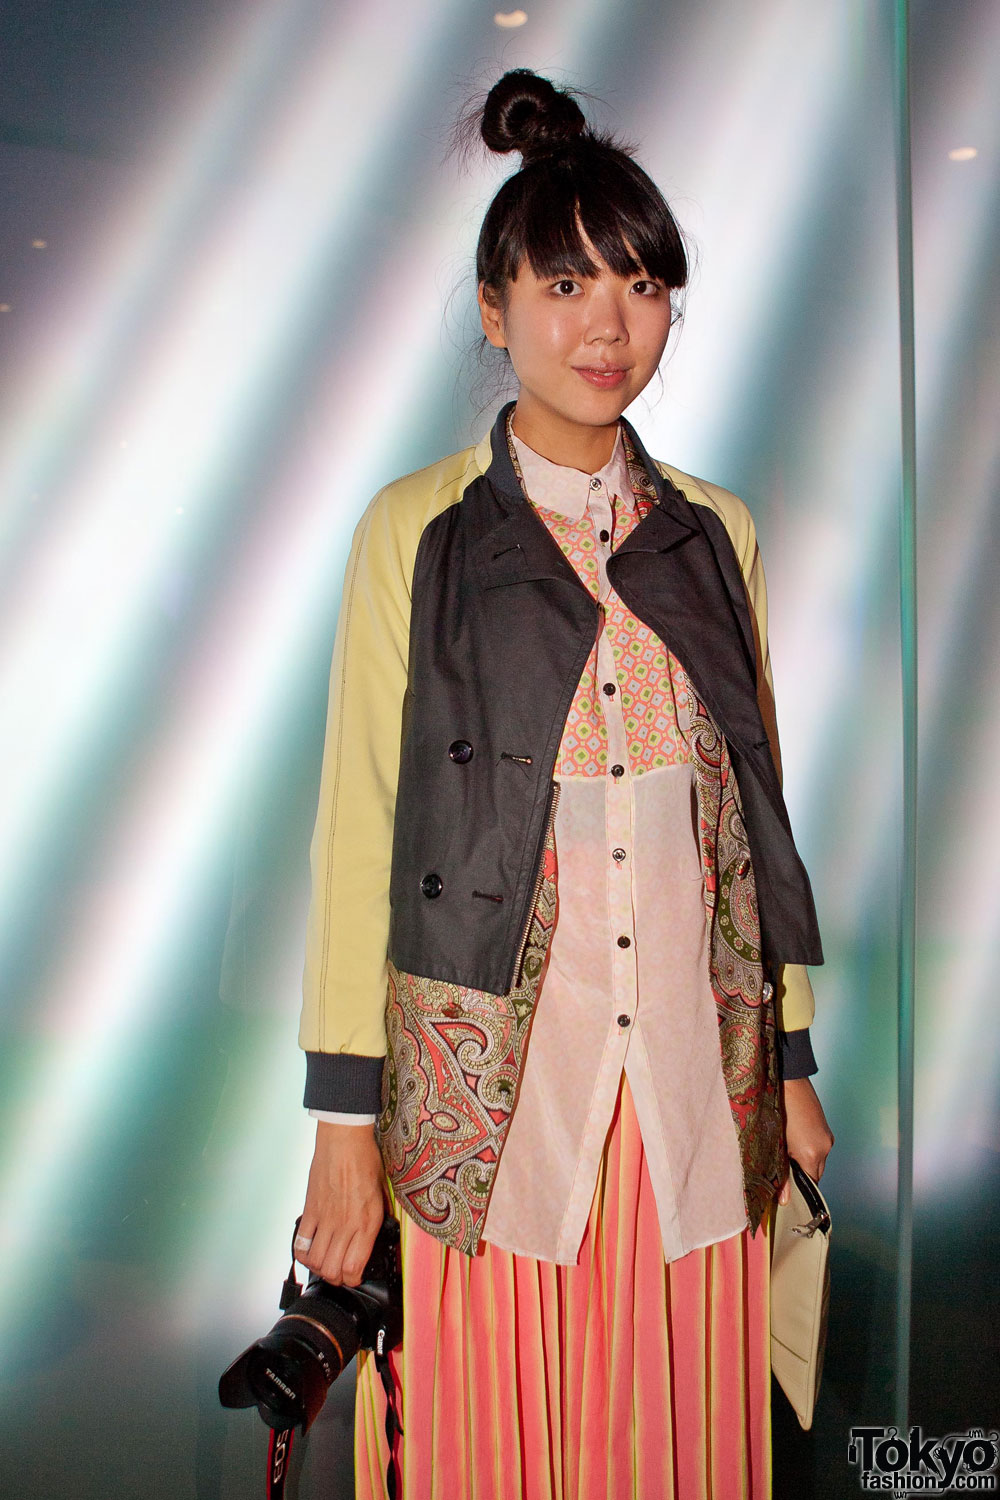 Susie Bubble At Molfic During Japan Fashion Week In Tokyo